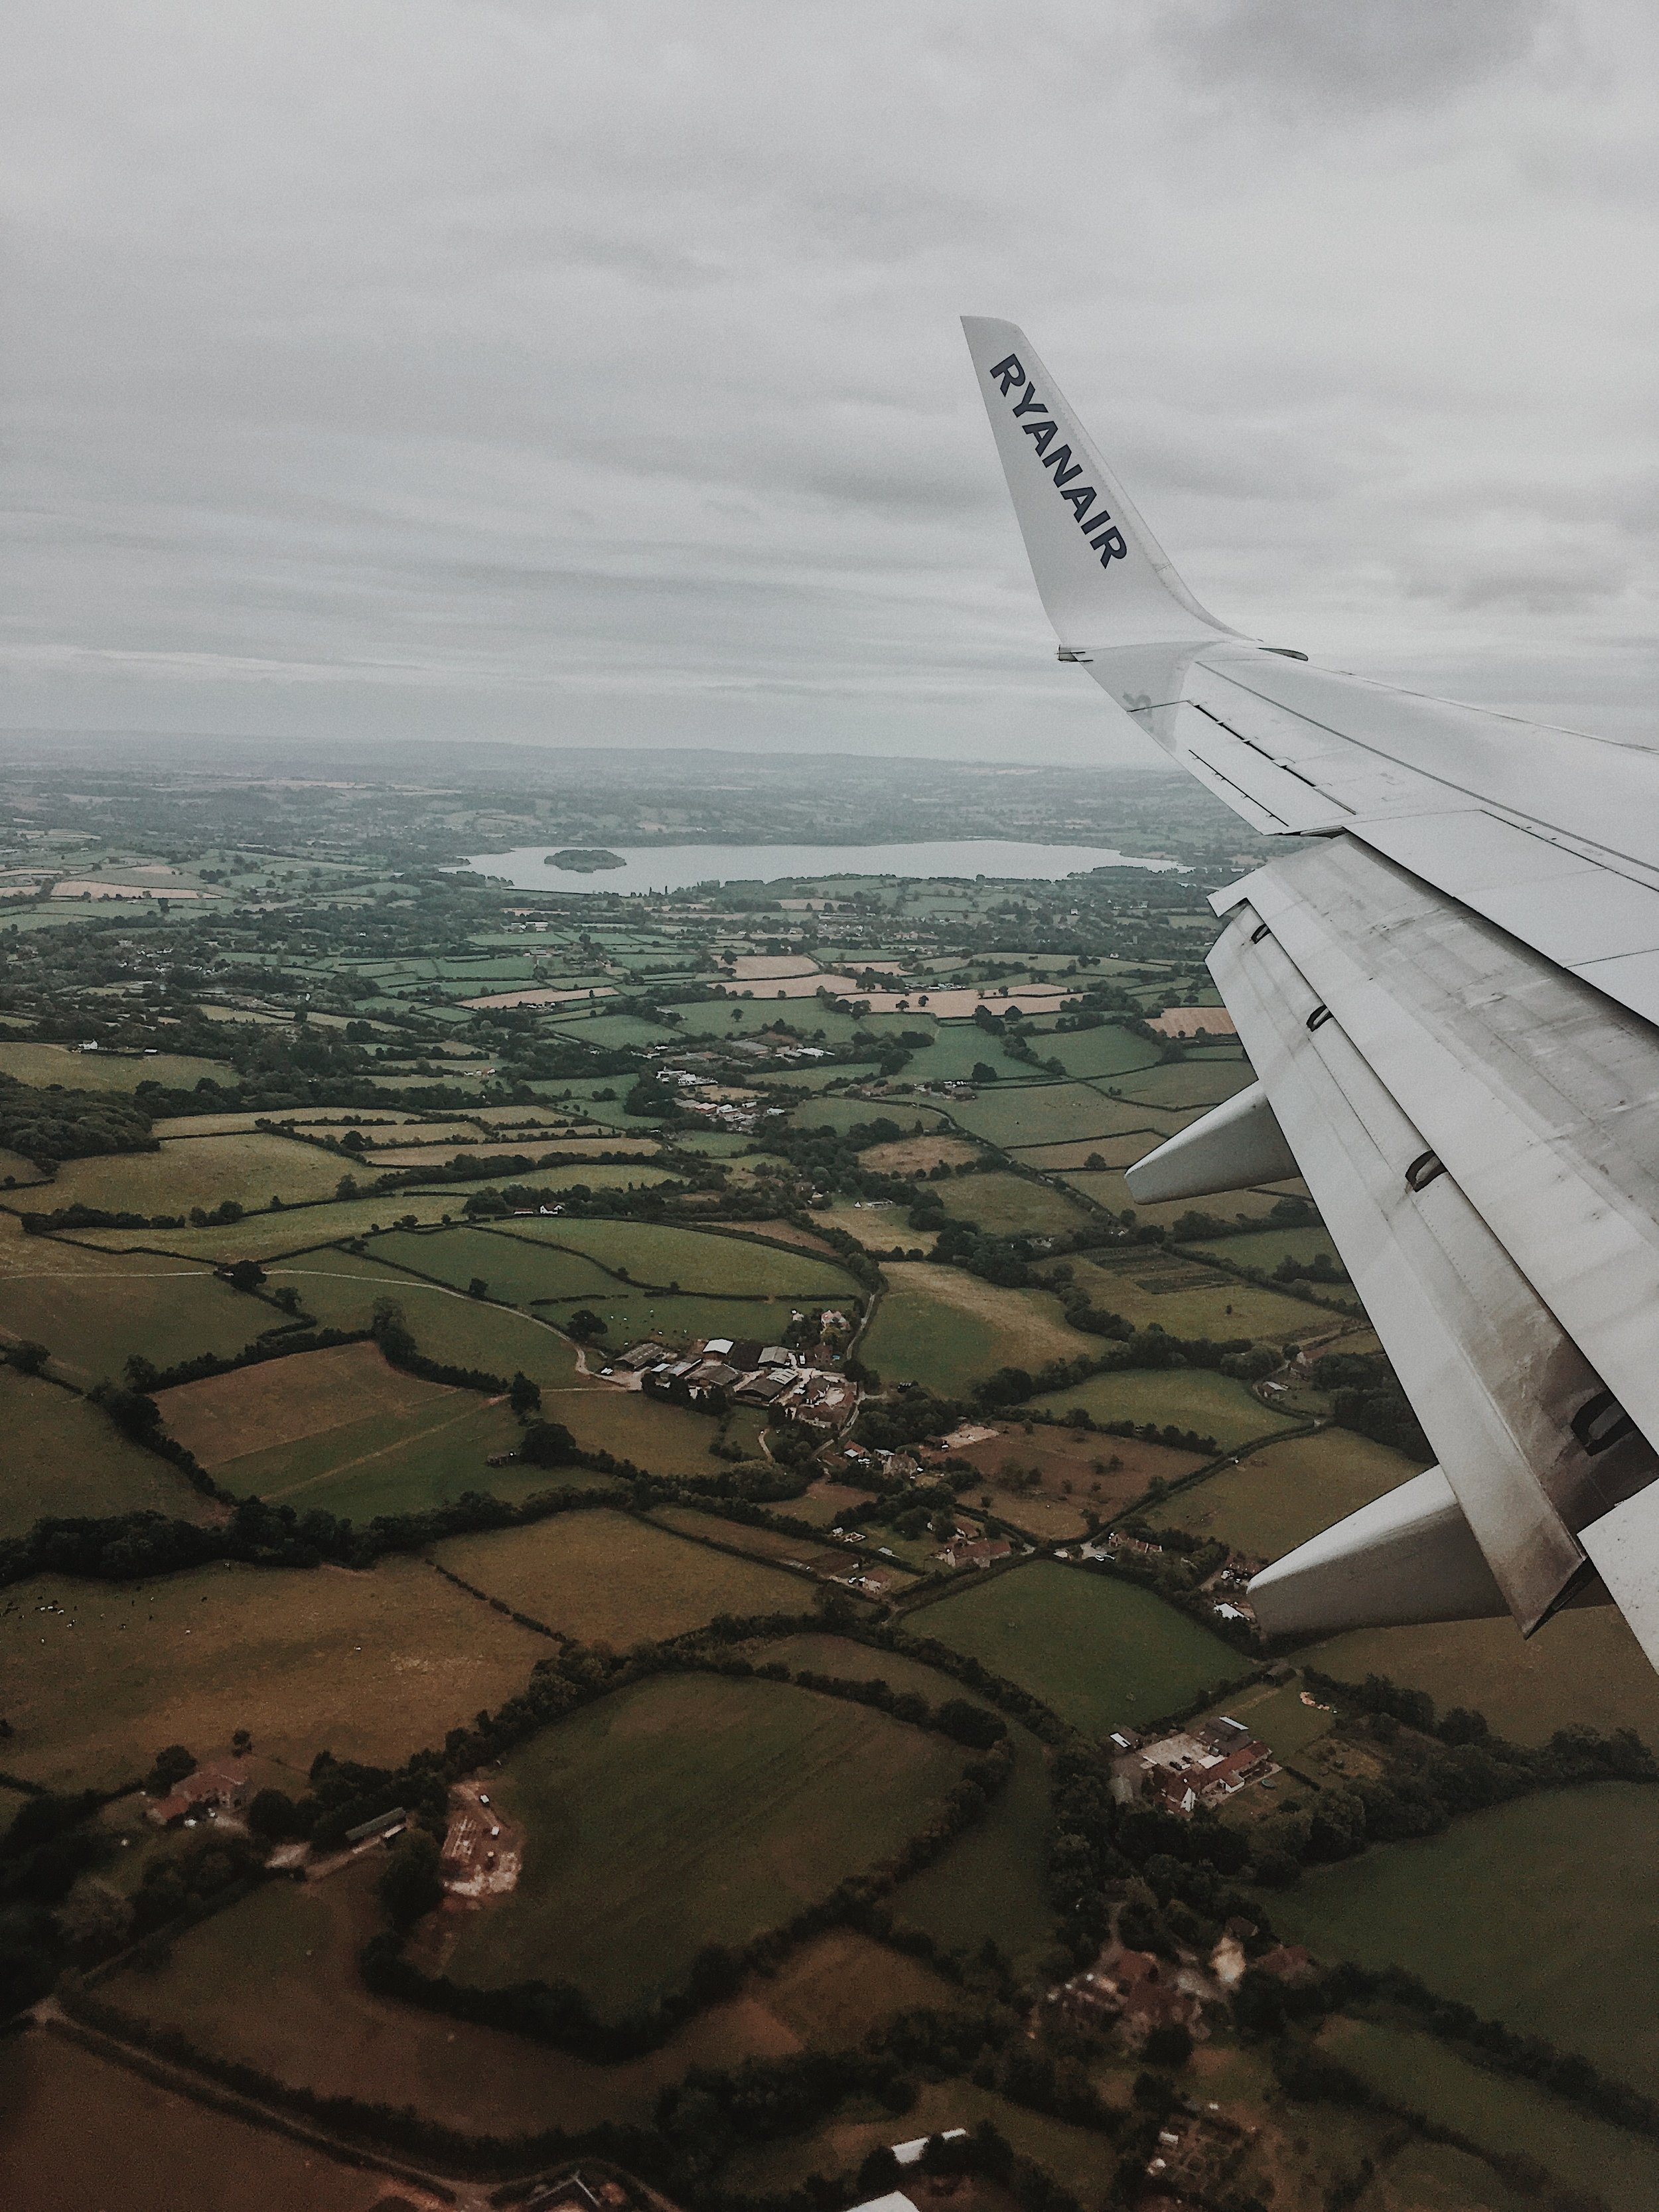 our view of england from the airplane 🤩